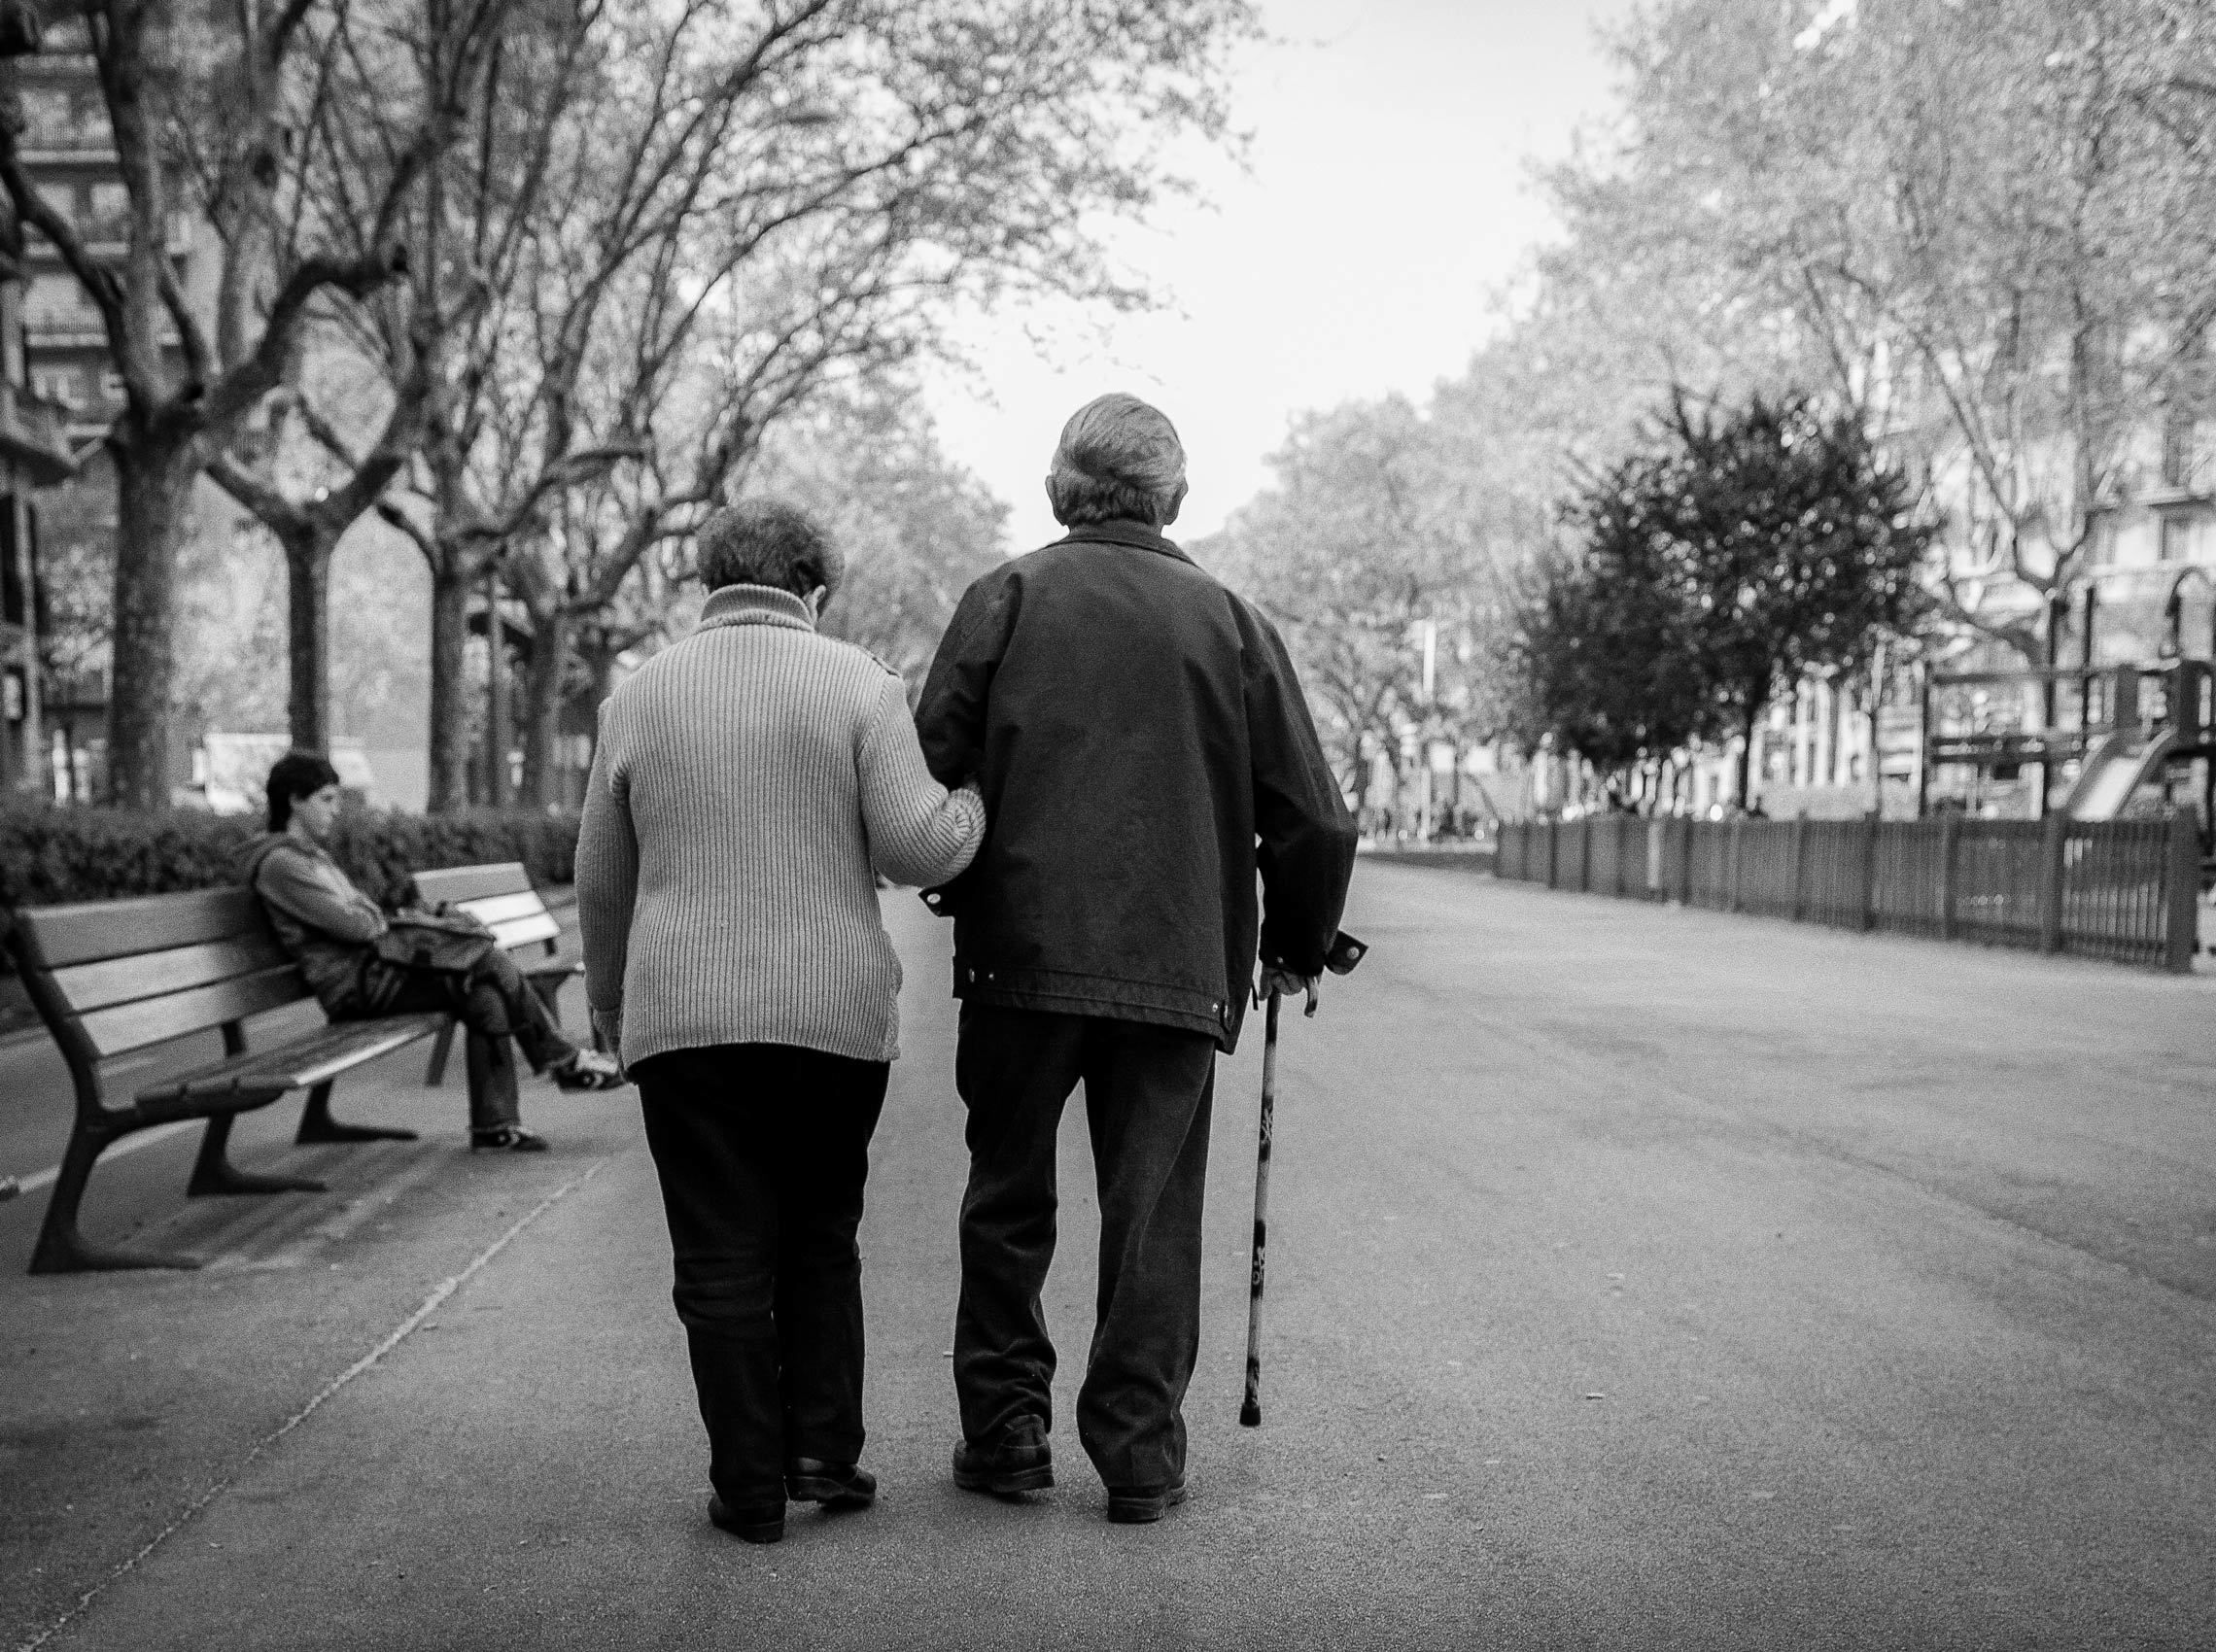 1oldercouplewalking